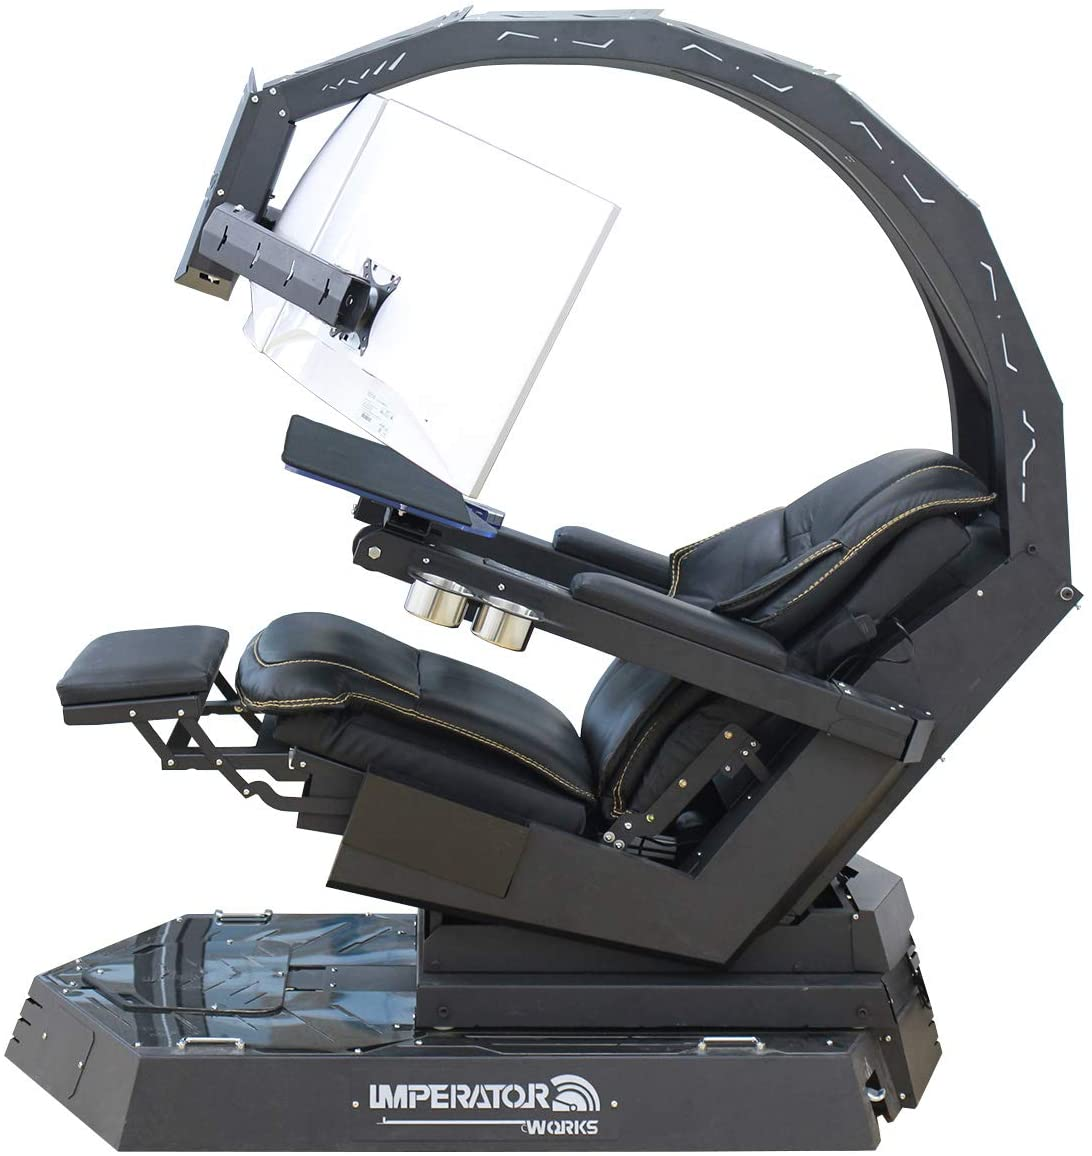 The Ultimate Gaming Chair